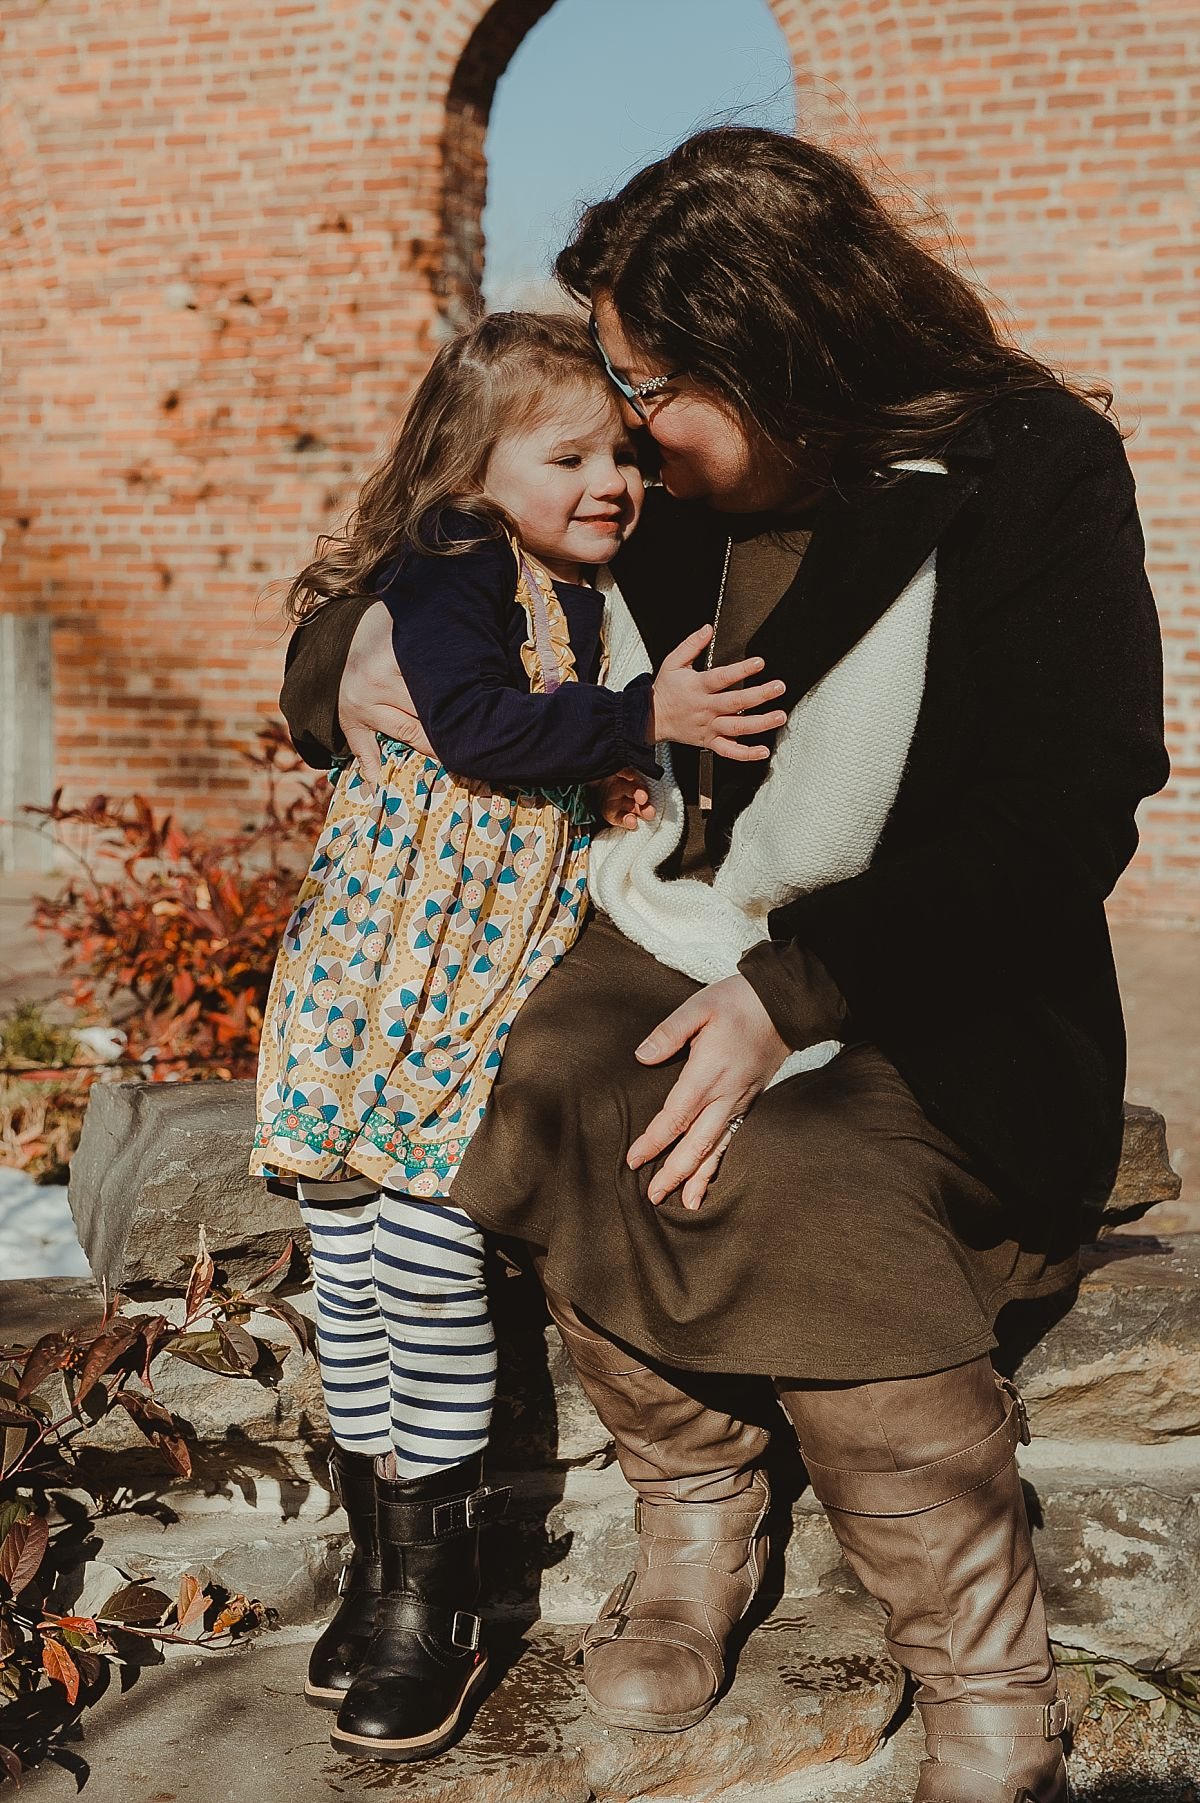 candid photo of mom and daughter cuddling with brick wall backdrop in dumbo brooklyn. image by nyc family photographer krystil mcdowall